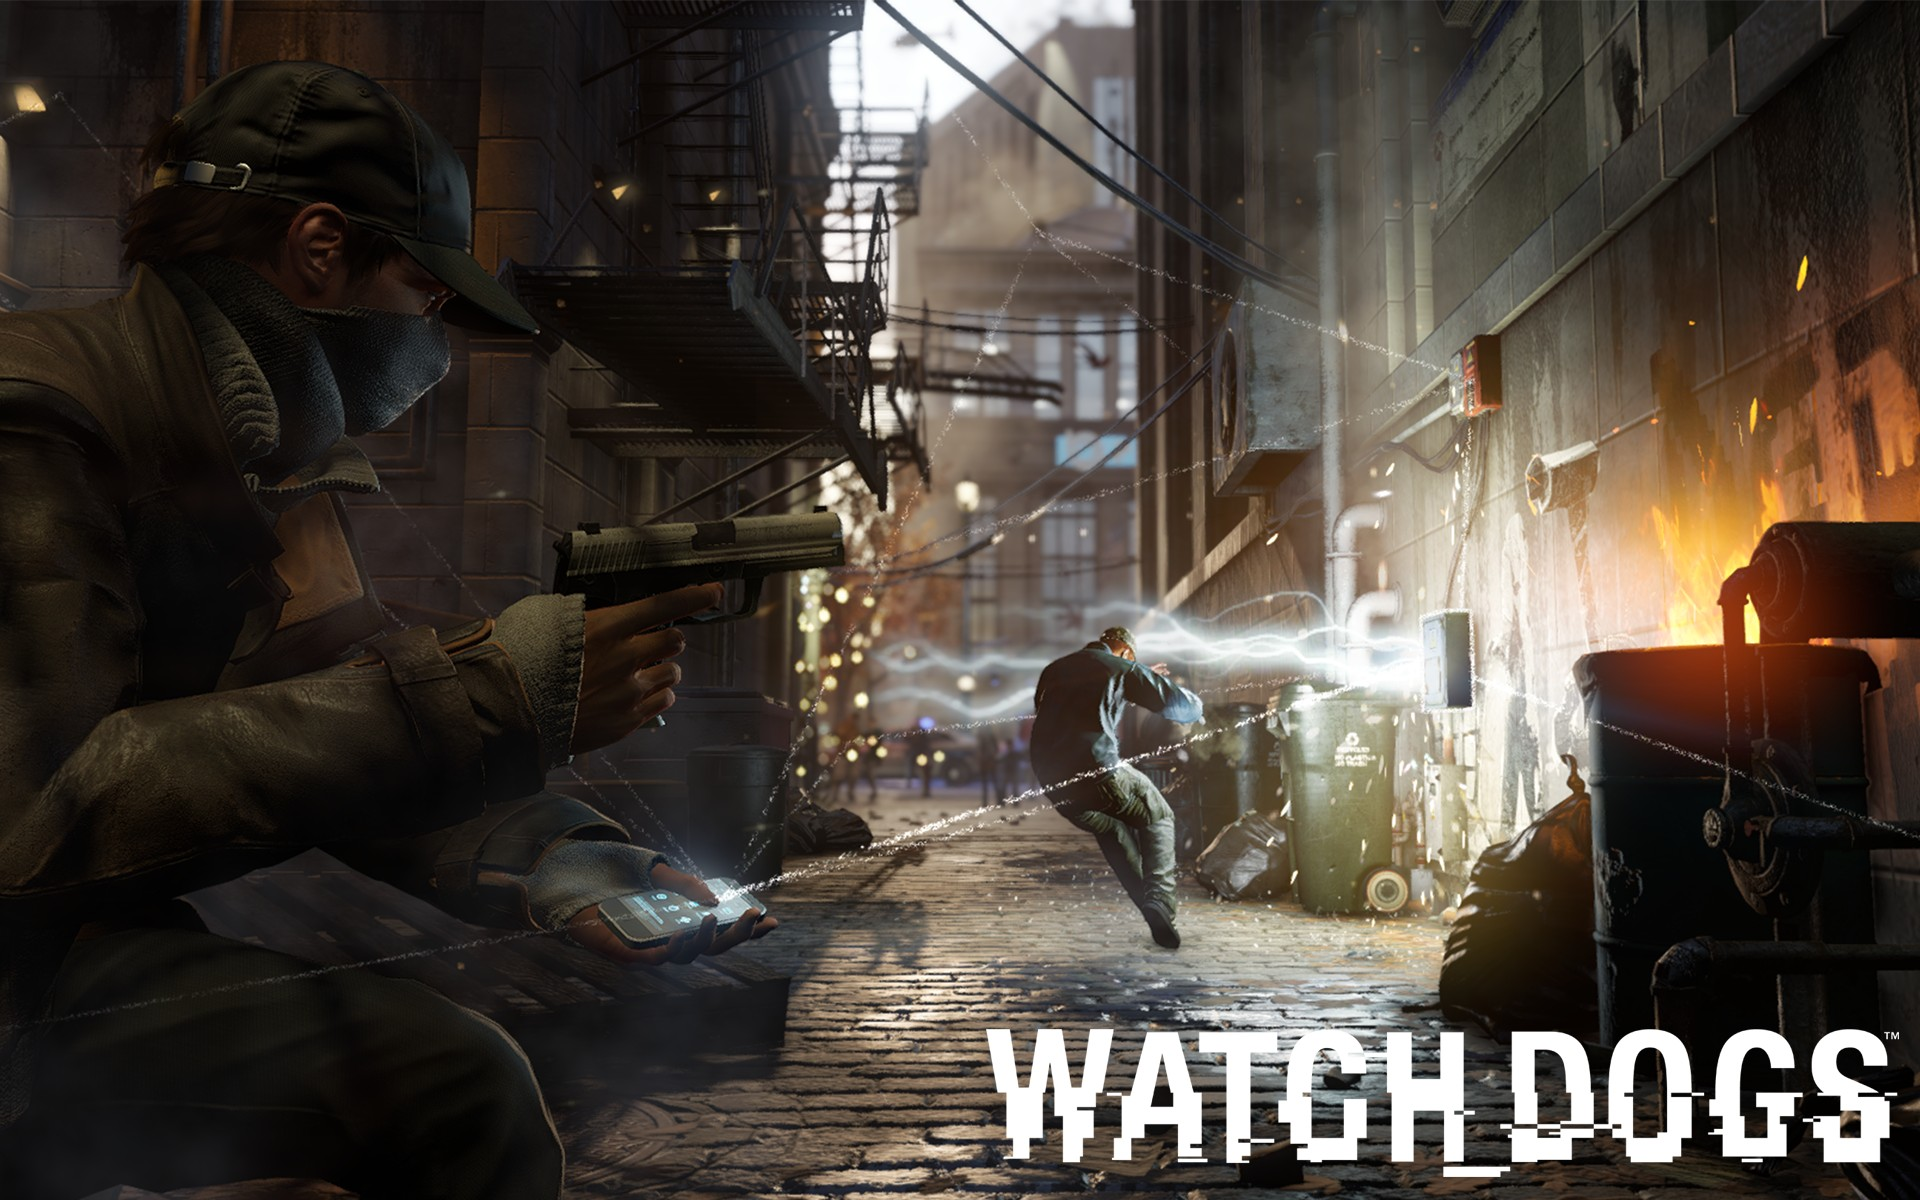 watch dogs live wallpaper - photo #10